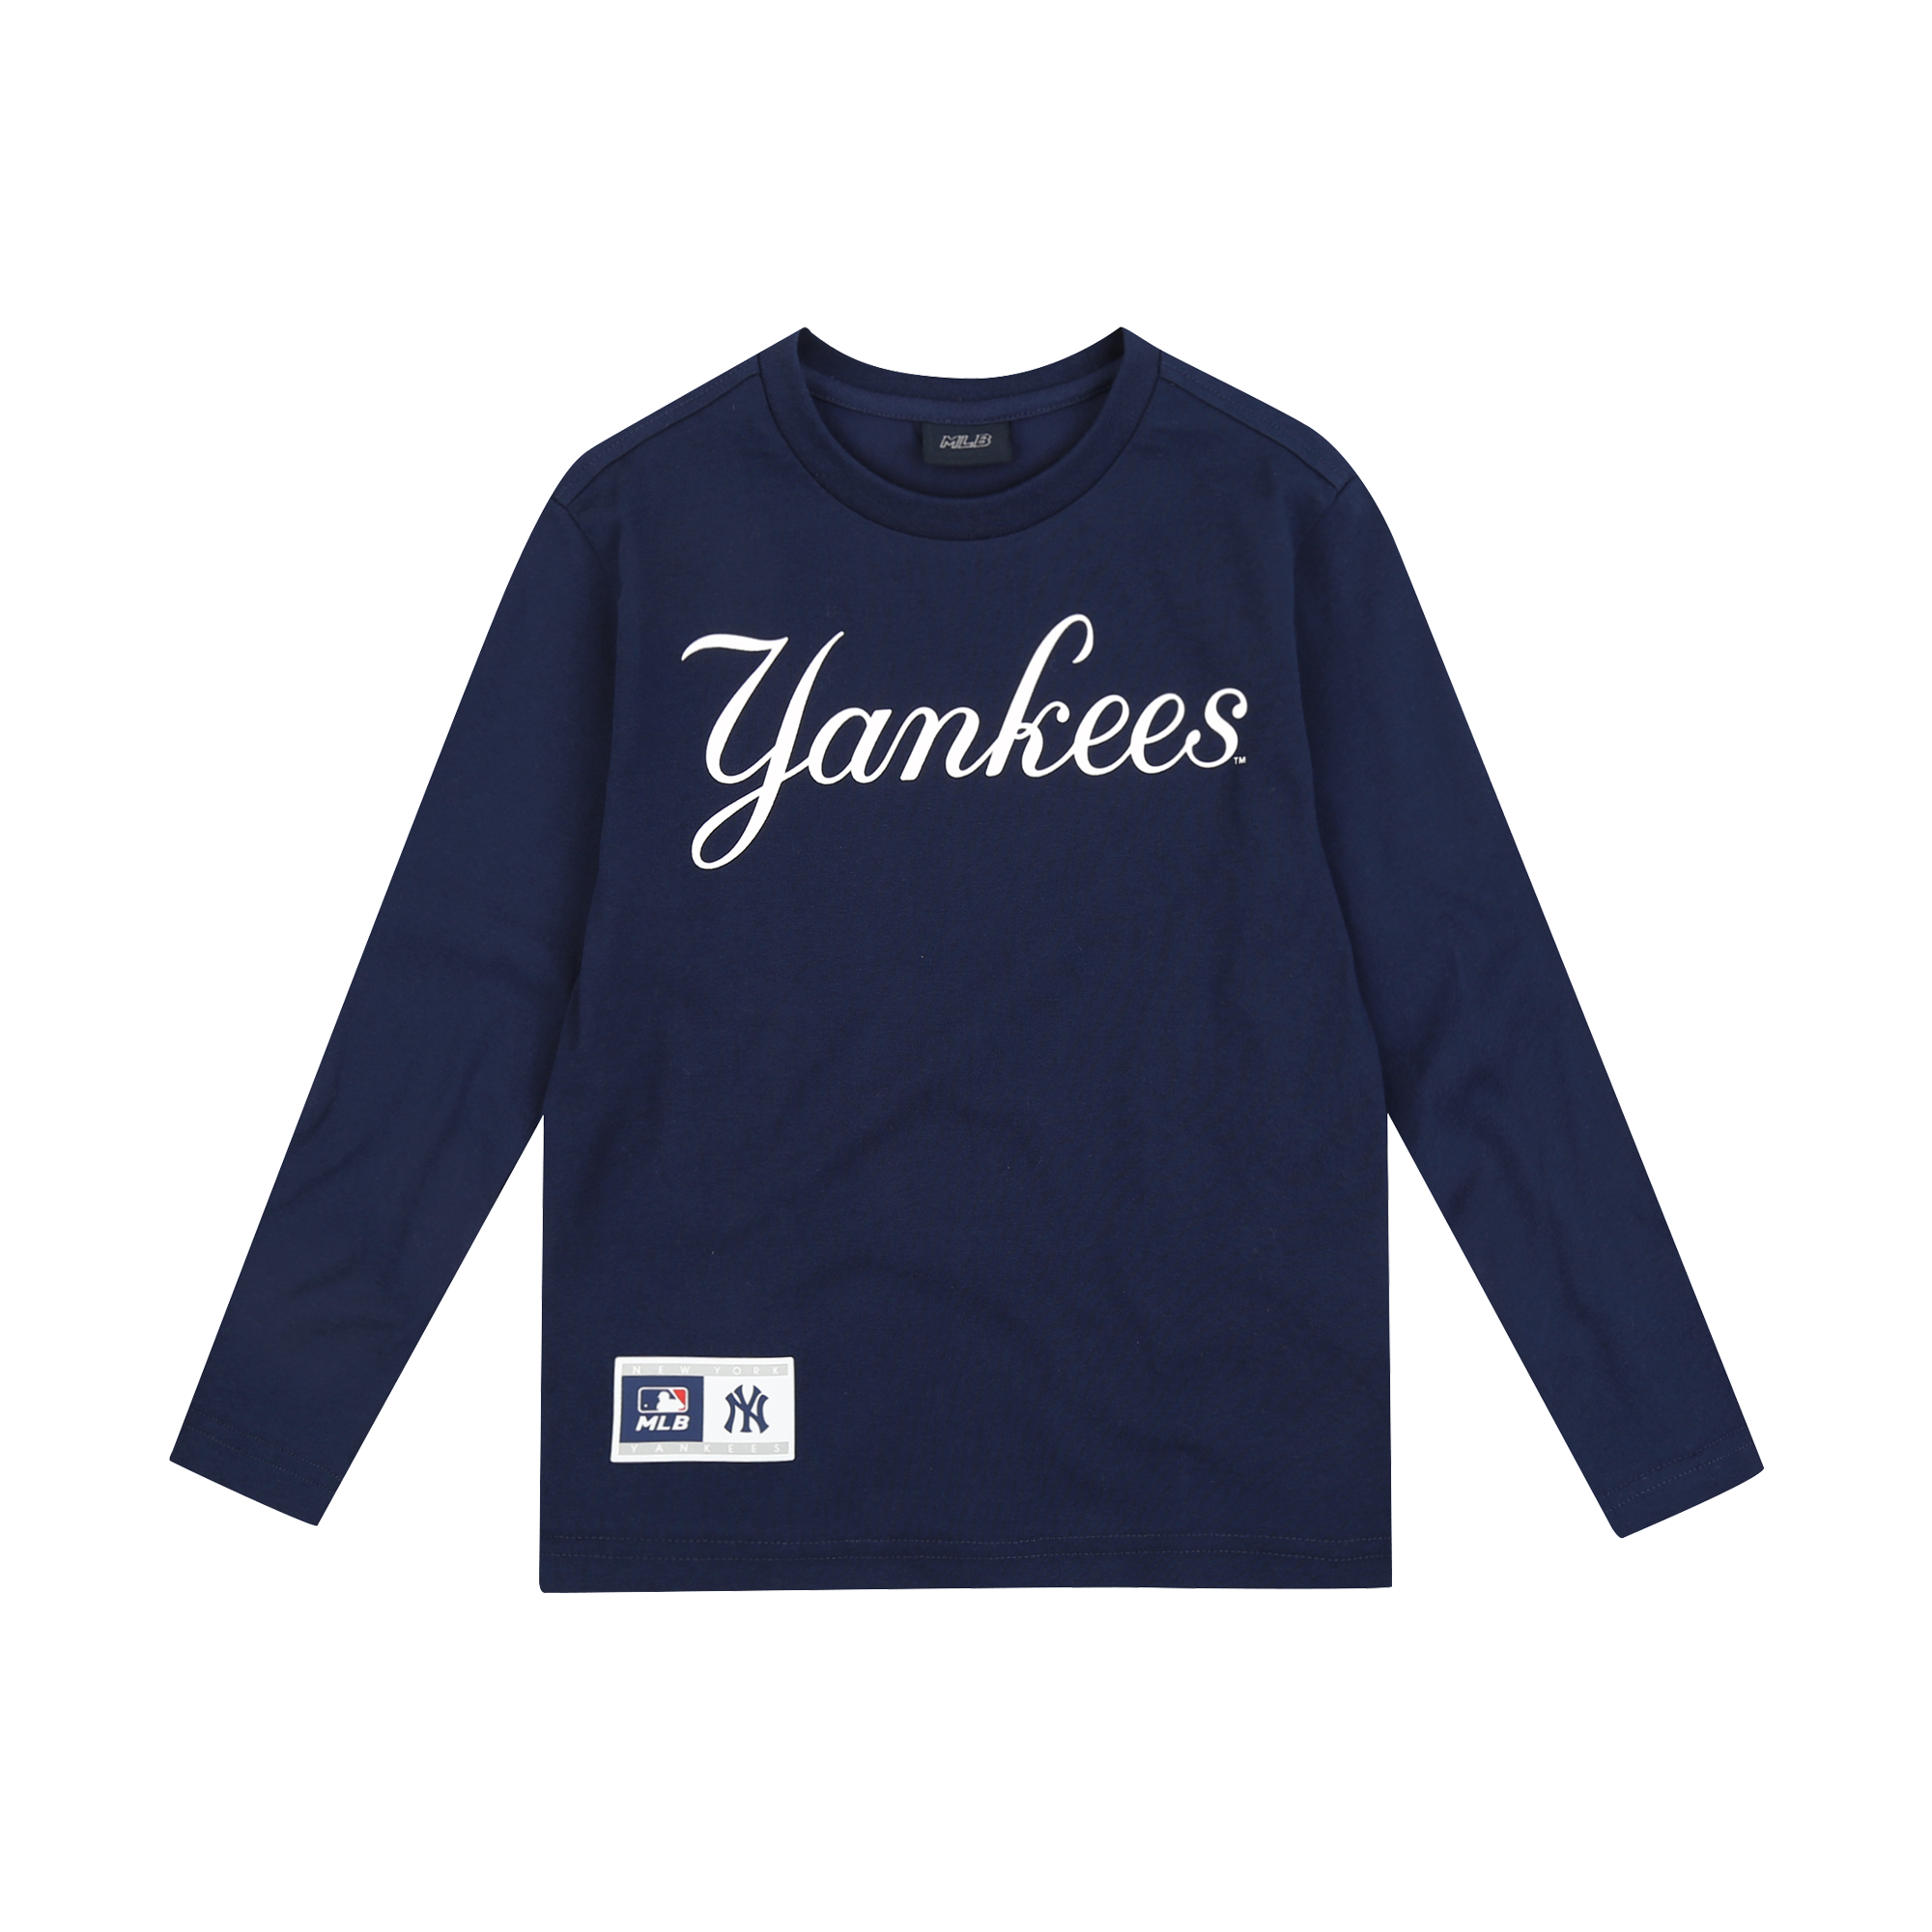 NEW YORK YANKEES UNISEX CURSIVE LOGO T-SHIRT